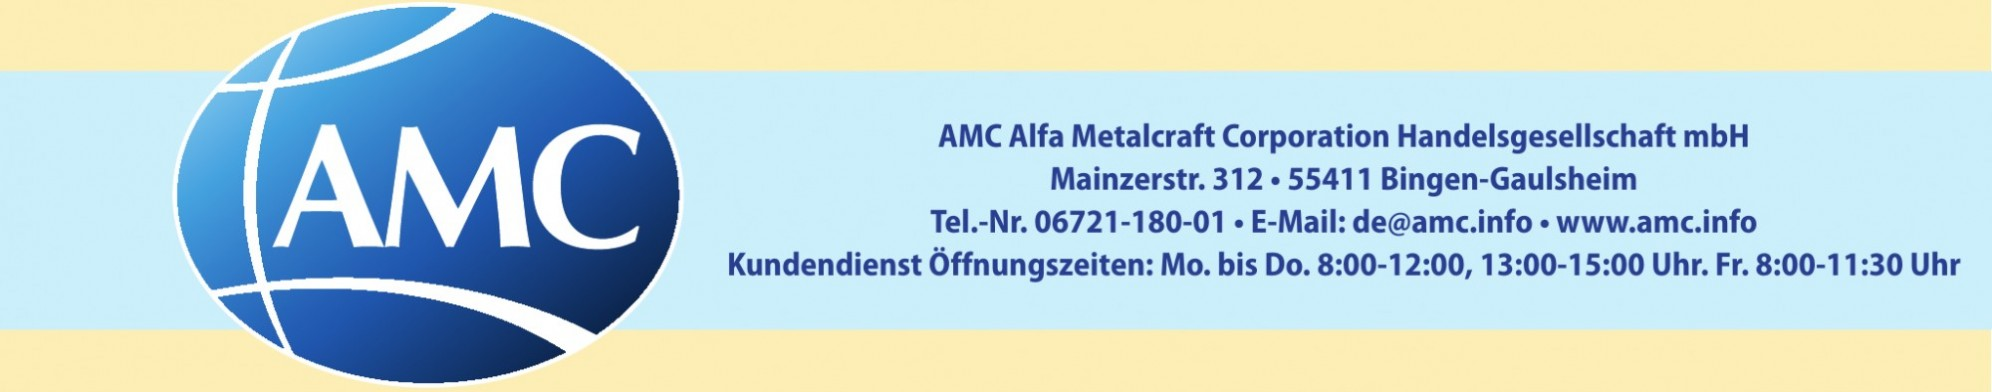 AMC Alfa Metalcraft Corporation Handelsgesellschaft mbH